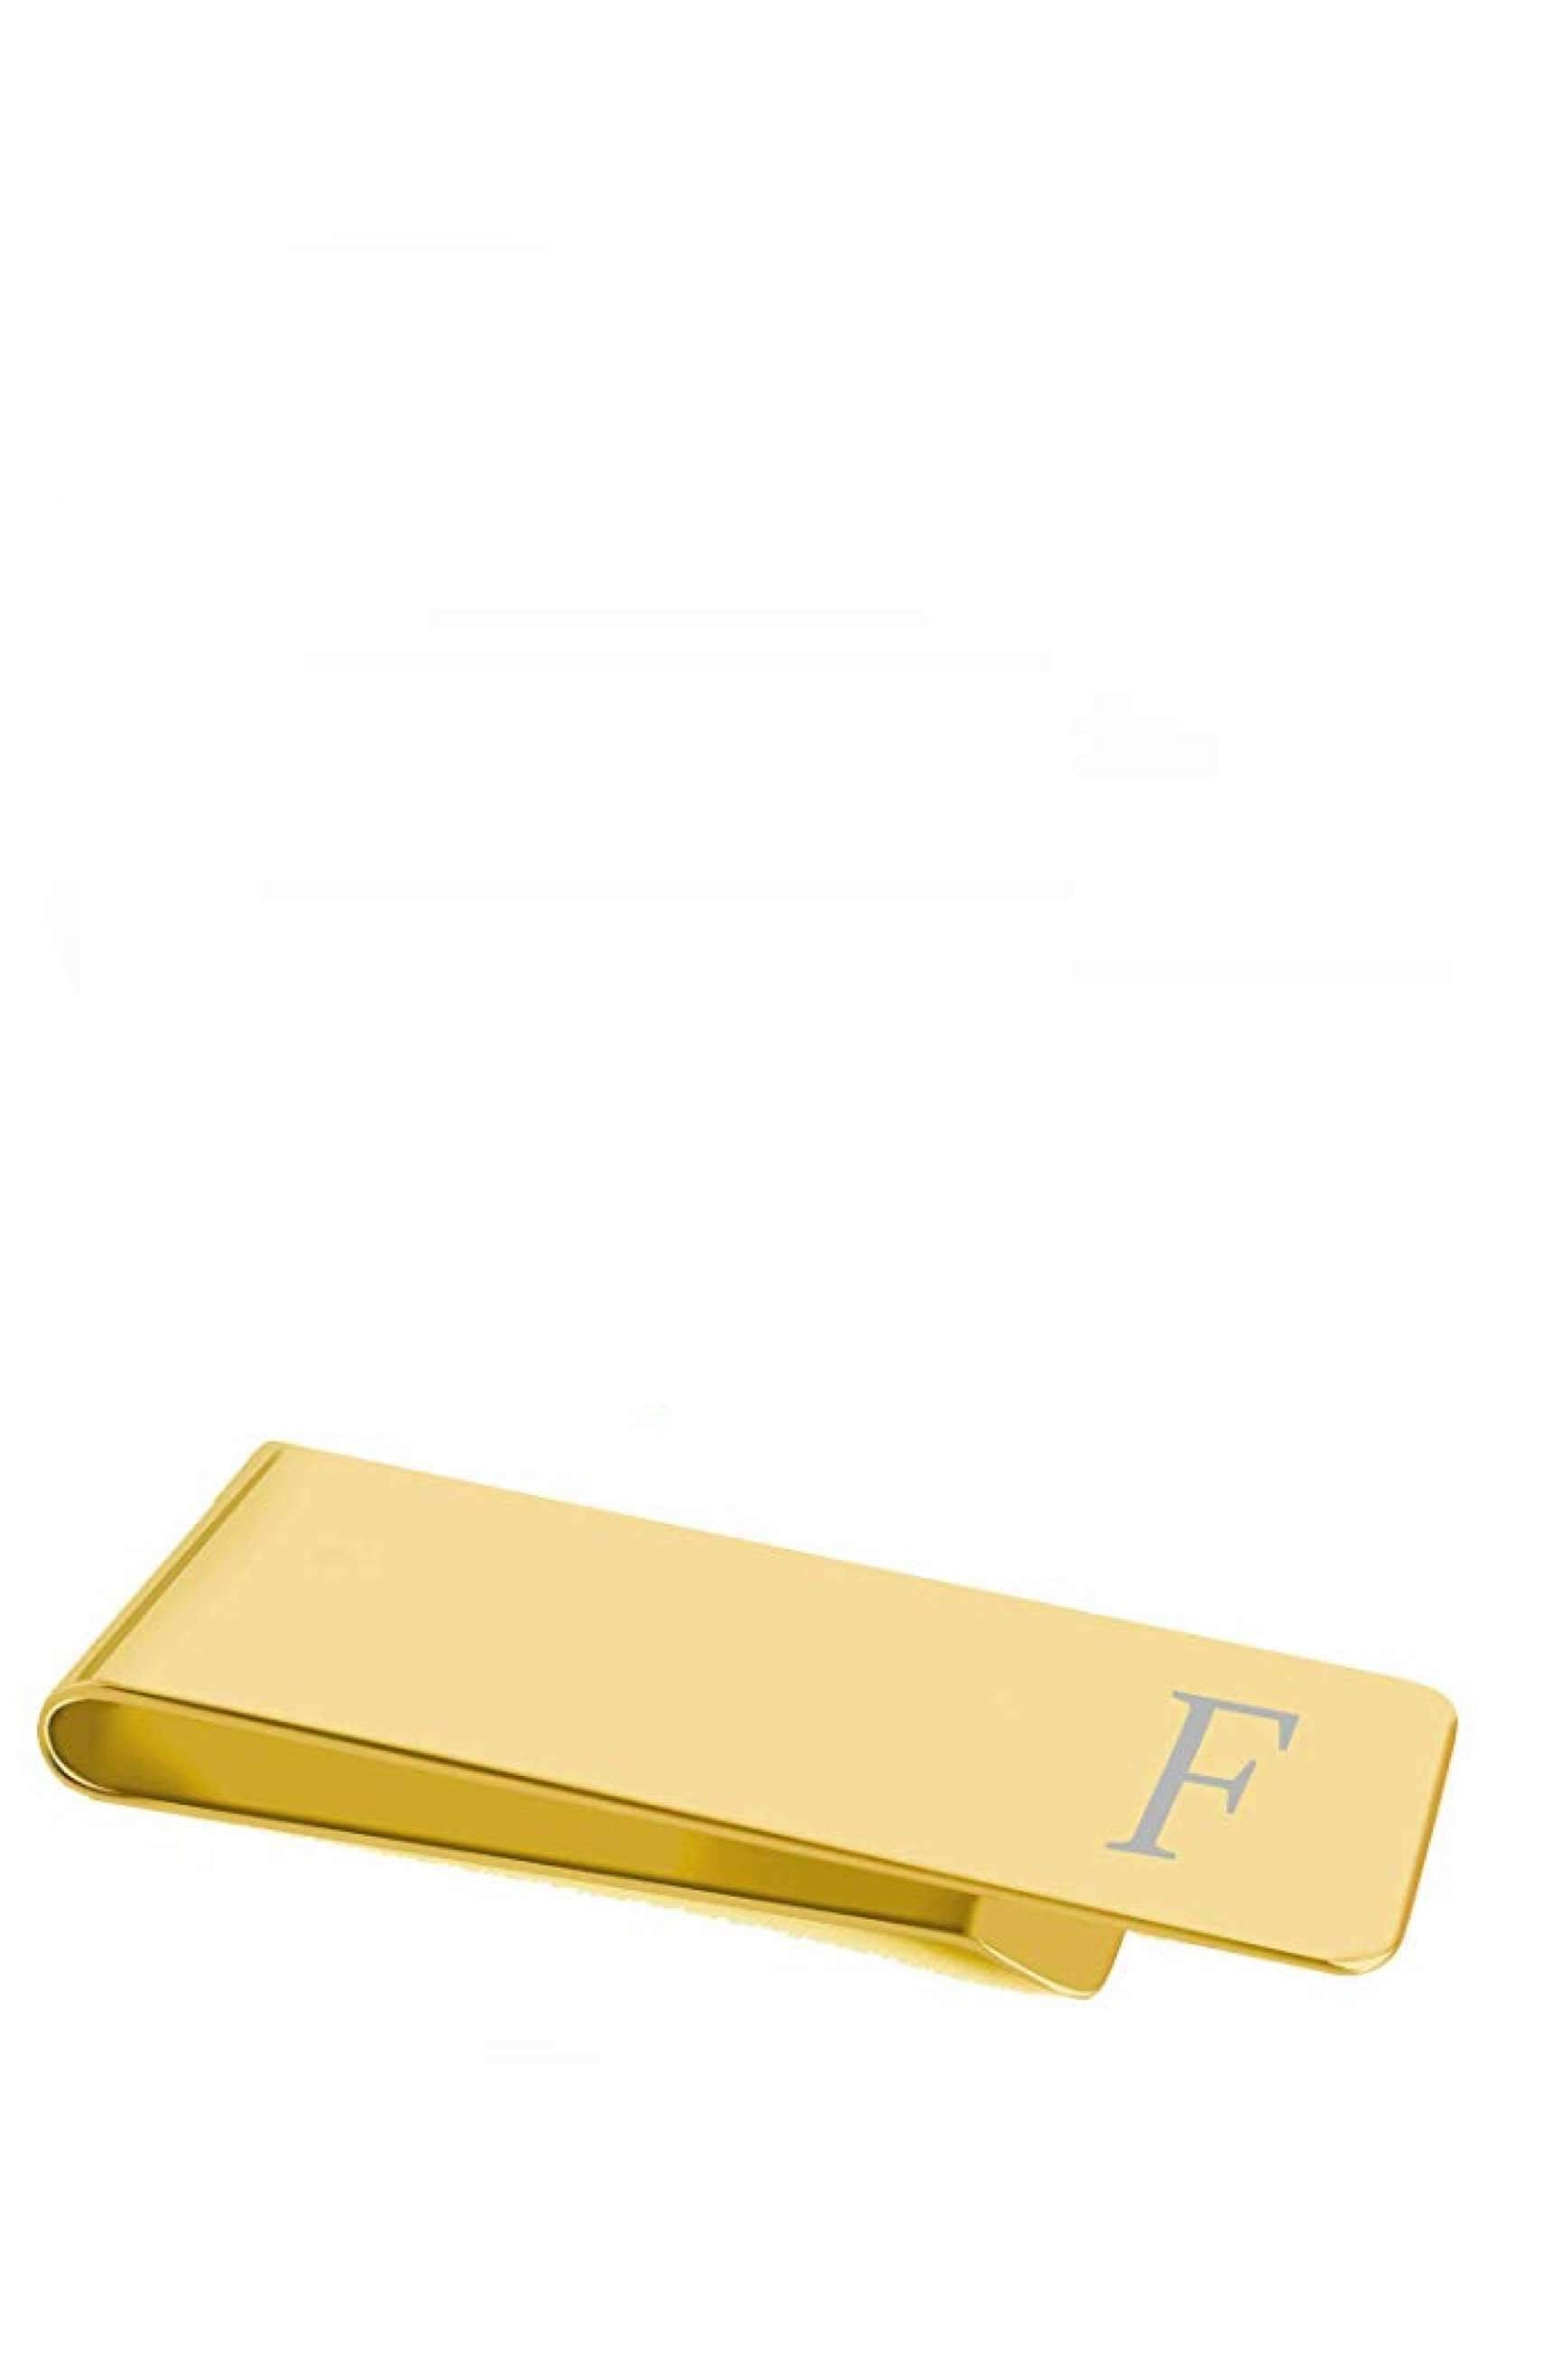 "18K Gold Initial ""F"" Money Clip"